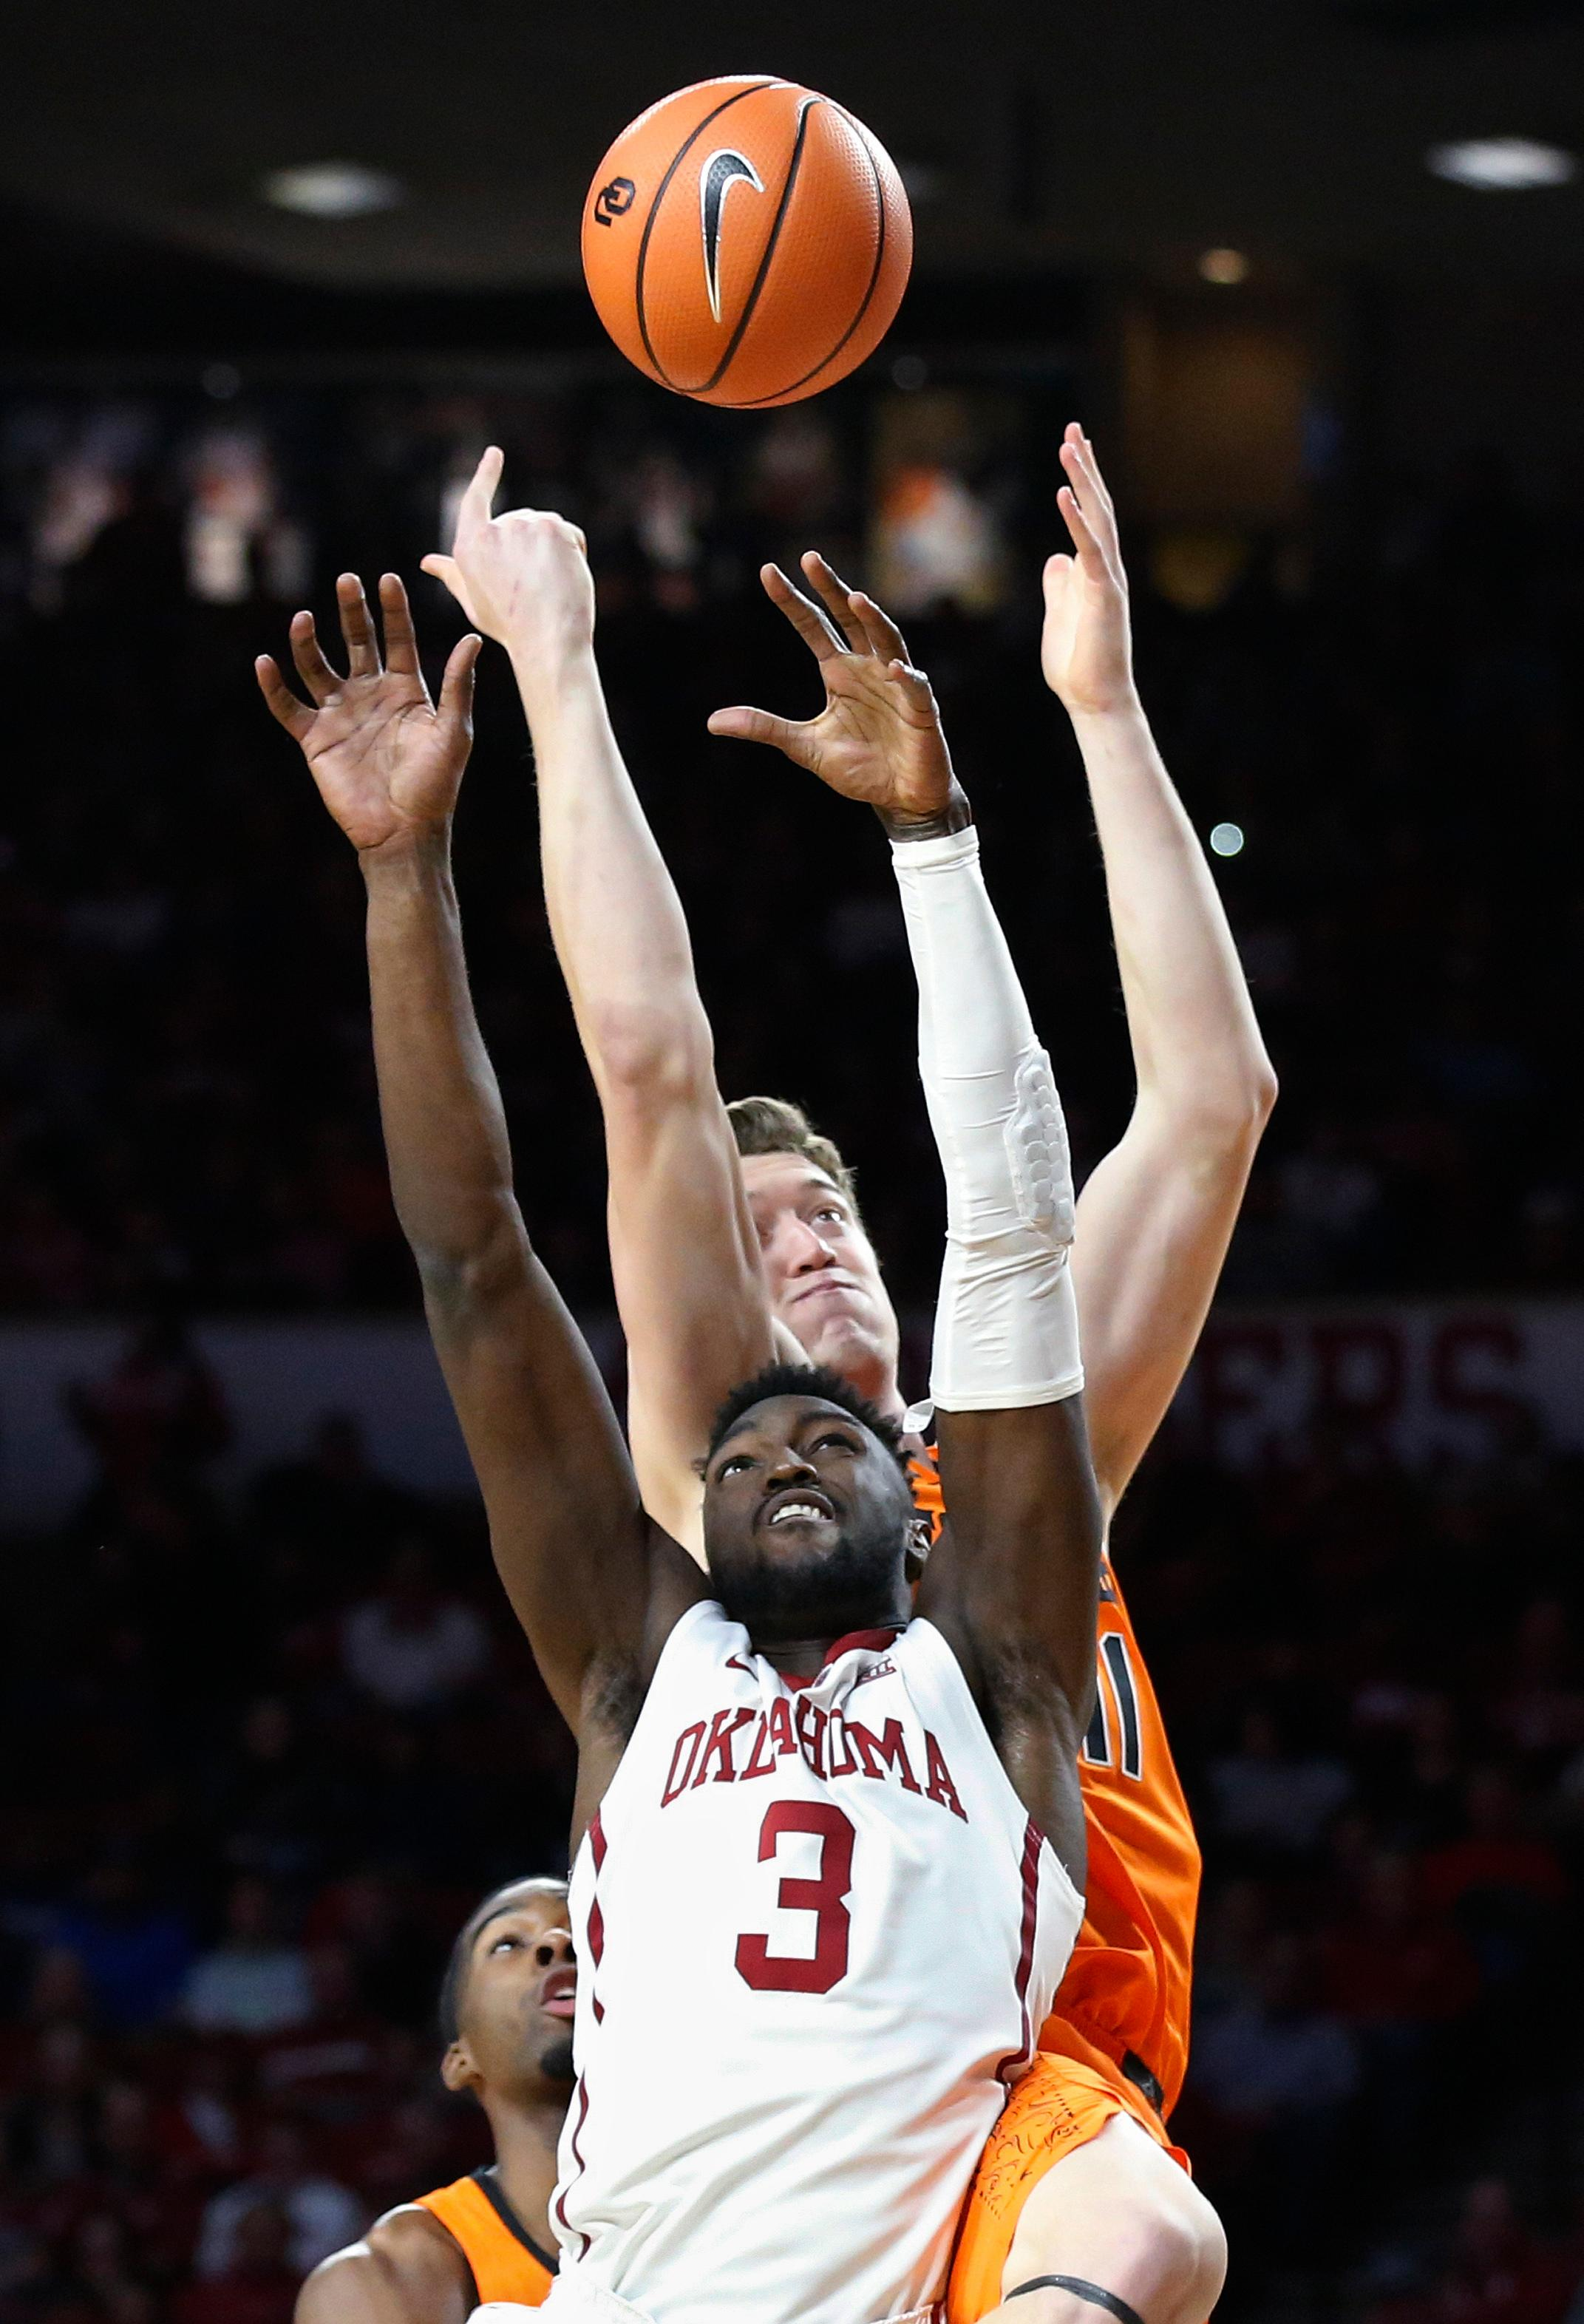 Oklahoma forward Khadeem Lattin (3) reaches for a rebound with Oklahoma State forward Mitchell Solomon, rear, during the first half of an NCAA college basketball game in Norman, Okla., Wednesday, Jan. 3, 2018. (AP Photo/Sue Ogrocki)